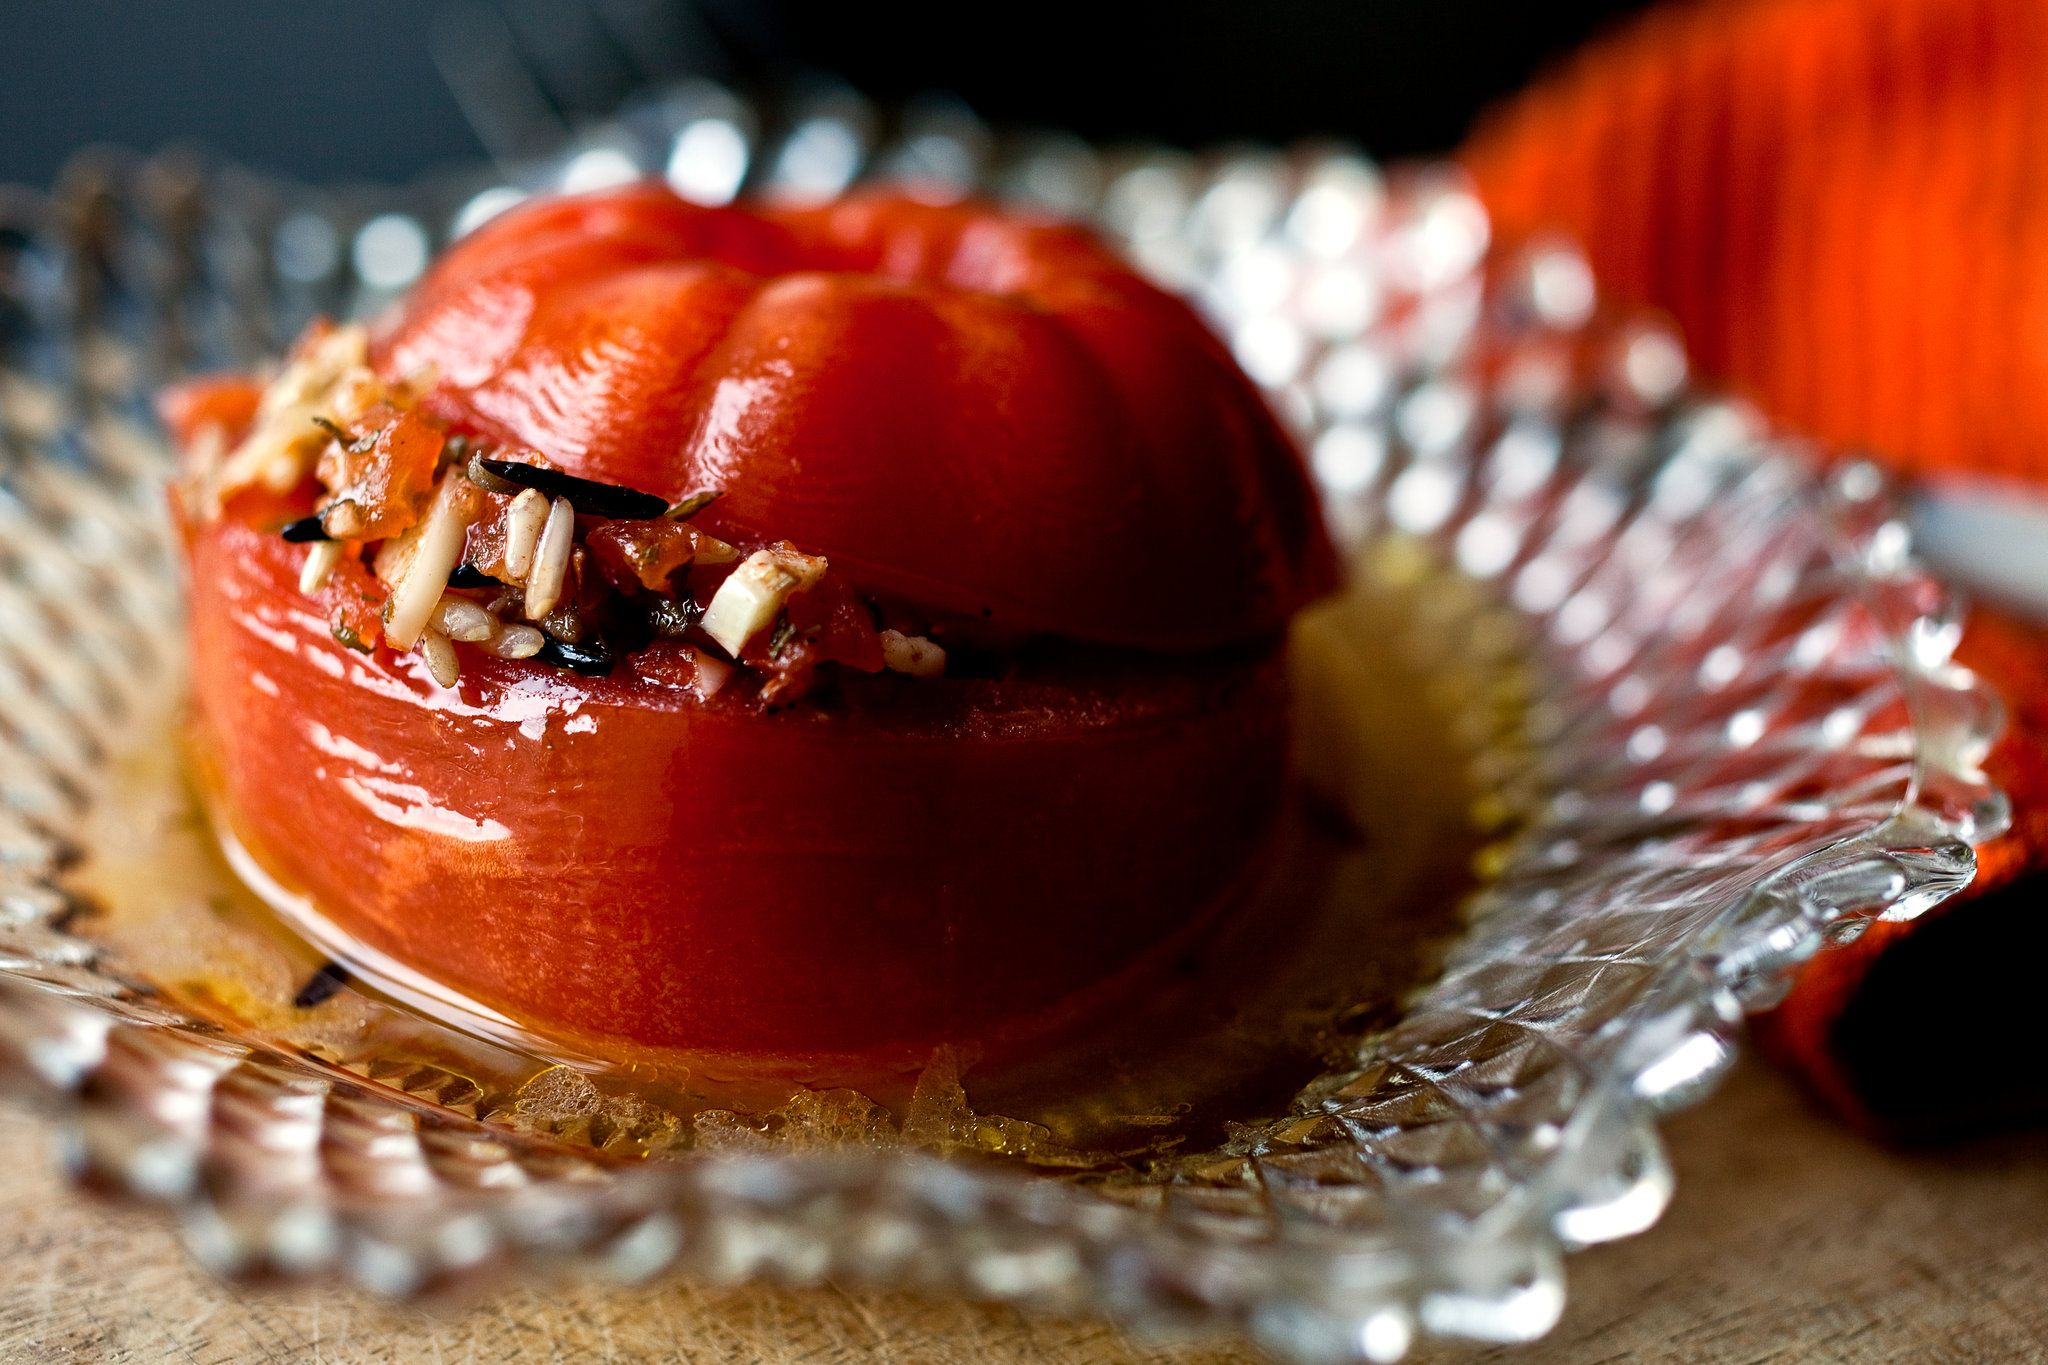 Greek Stuffed Tomatoes. Ubiquitous in Greece and filled with rice and herbs, usually mint and dill, with a little shredded zucchini mixed in with the rice.